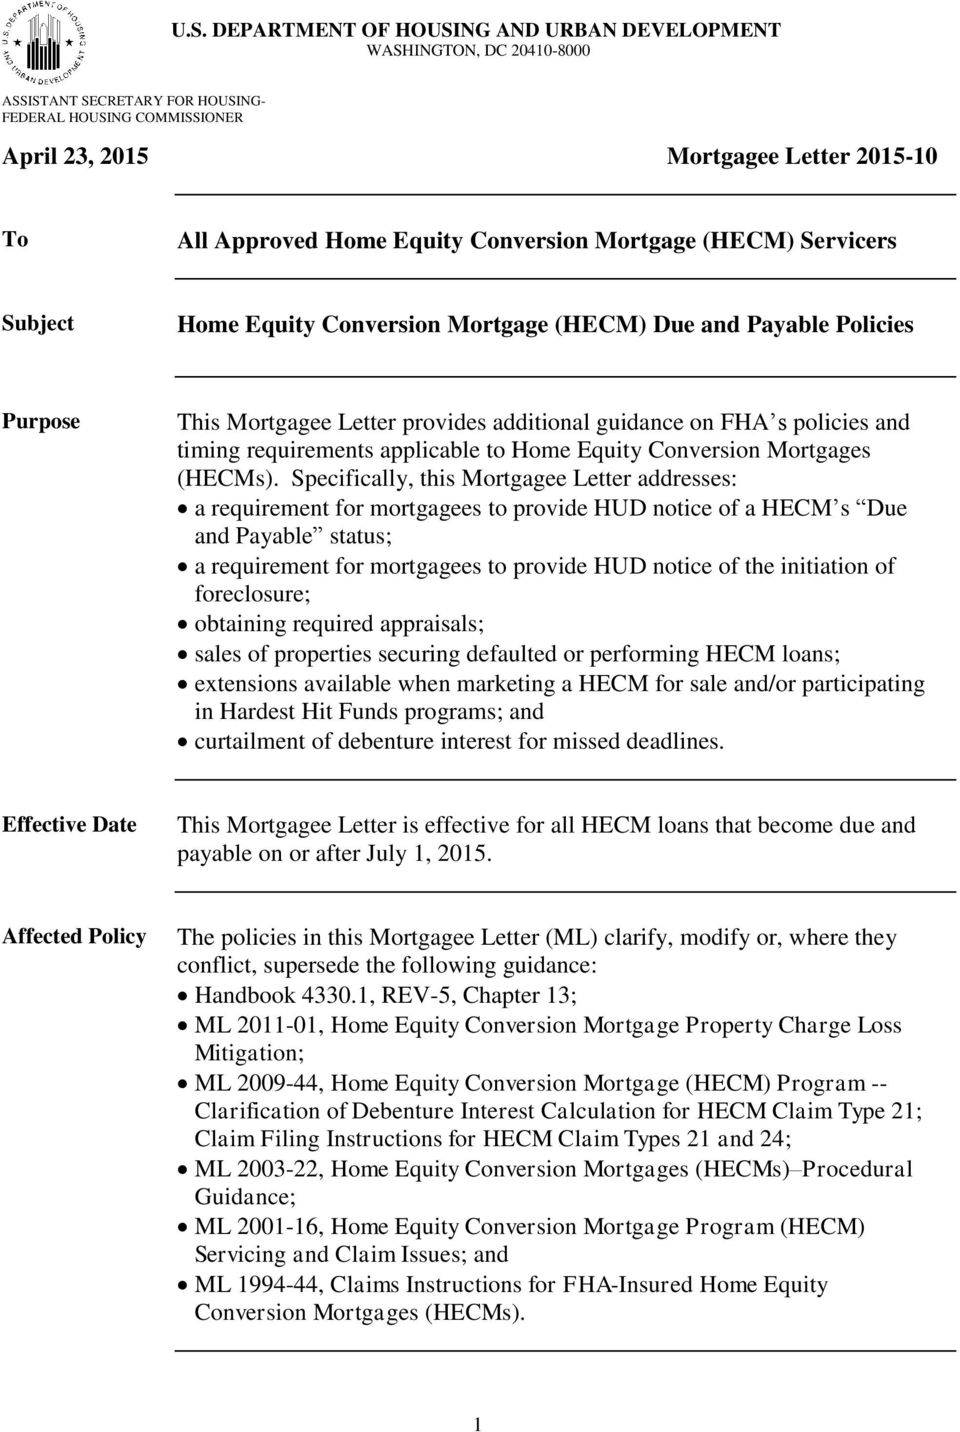 timing requirements applicable to Home Equity Conversion Mortgages (HECMs).